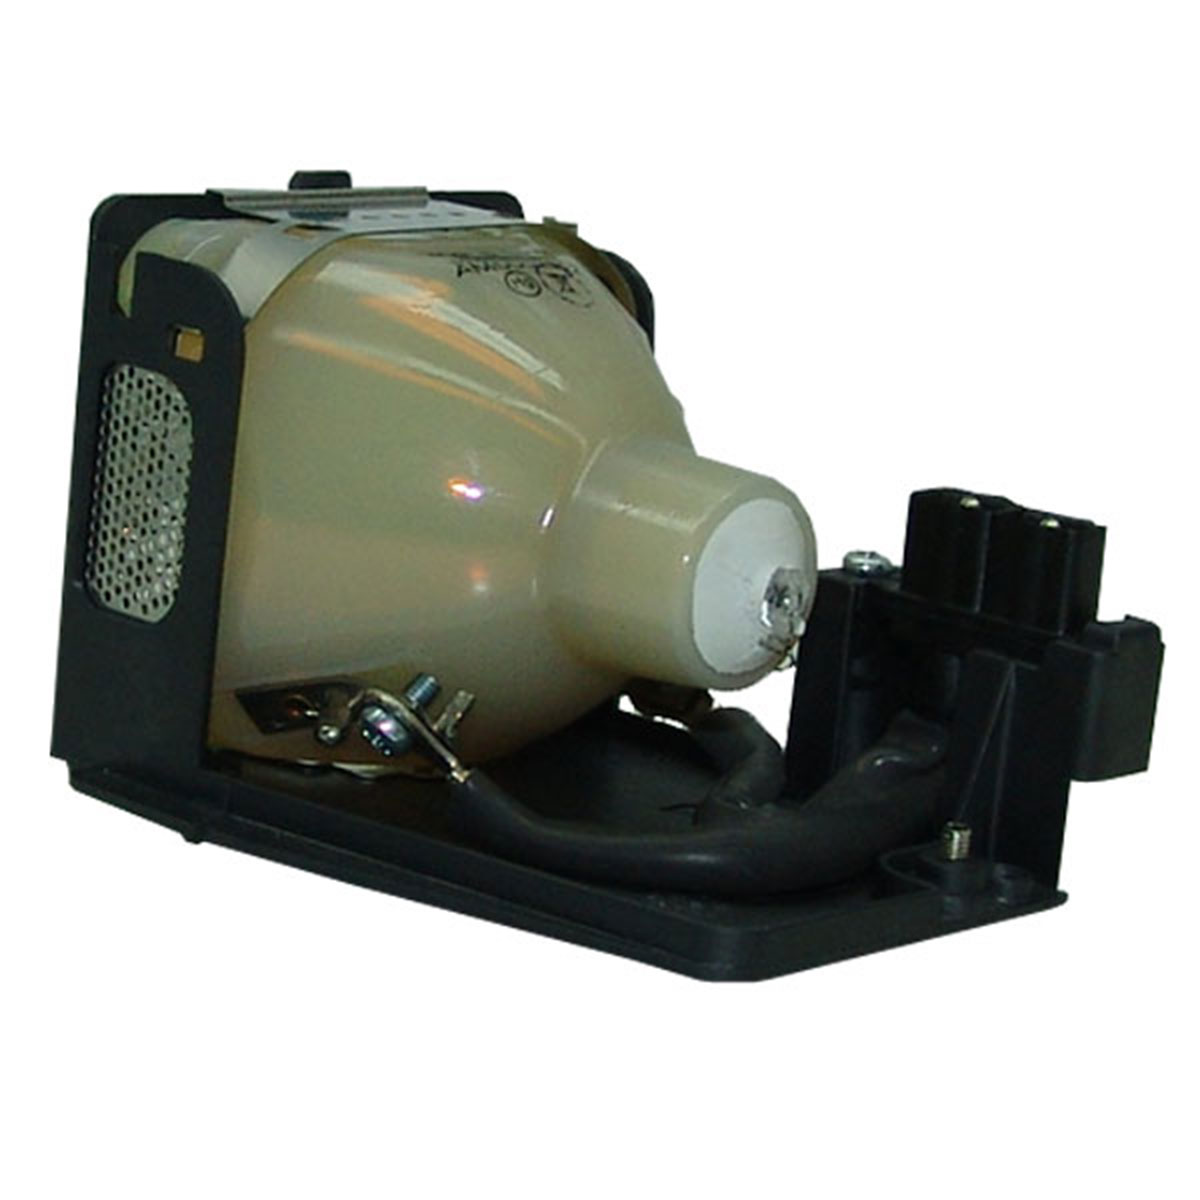 Original Philips Projector Lamp Replacement with Housing for Canon LV-7225 - image 2 of 5